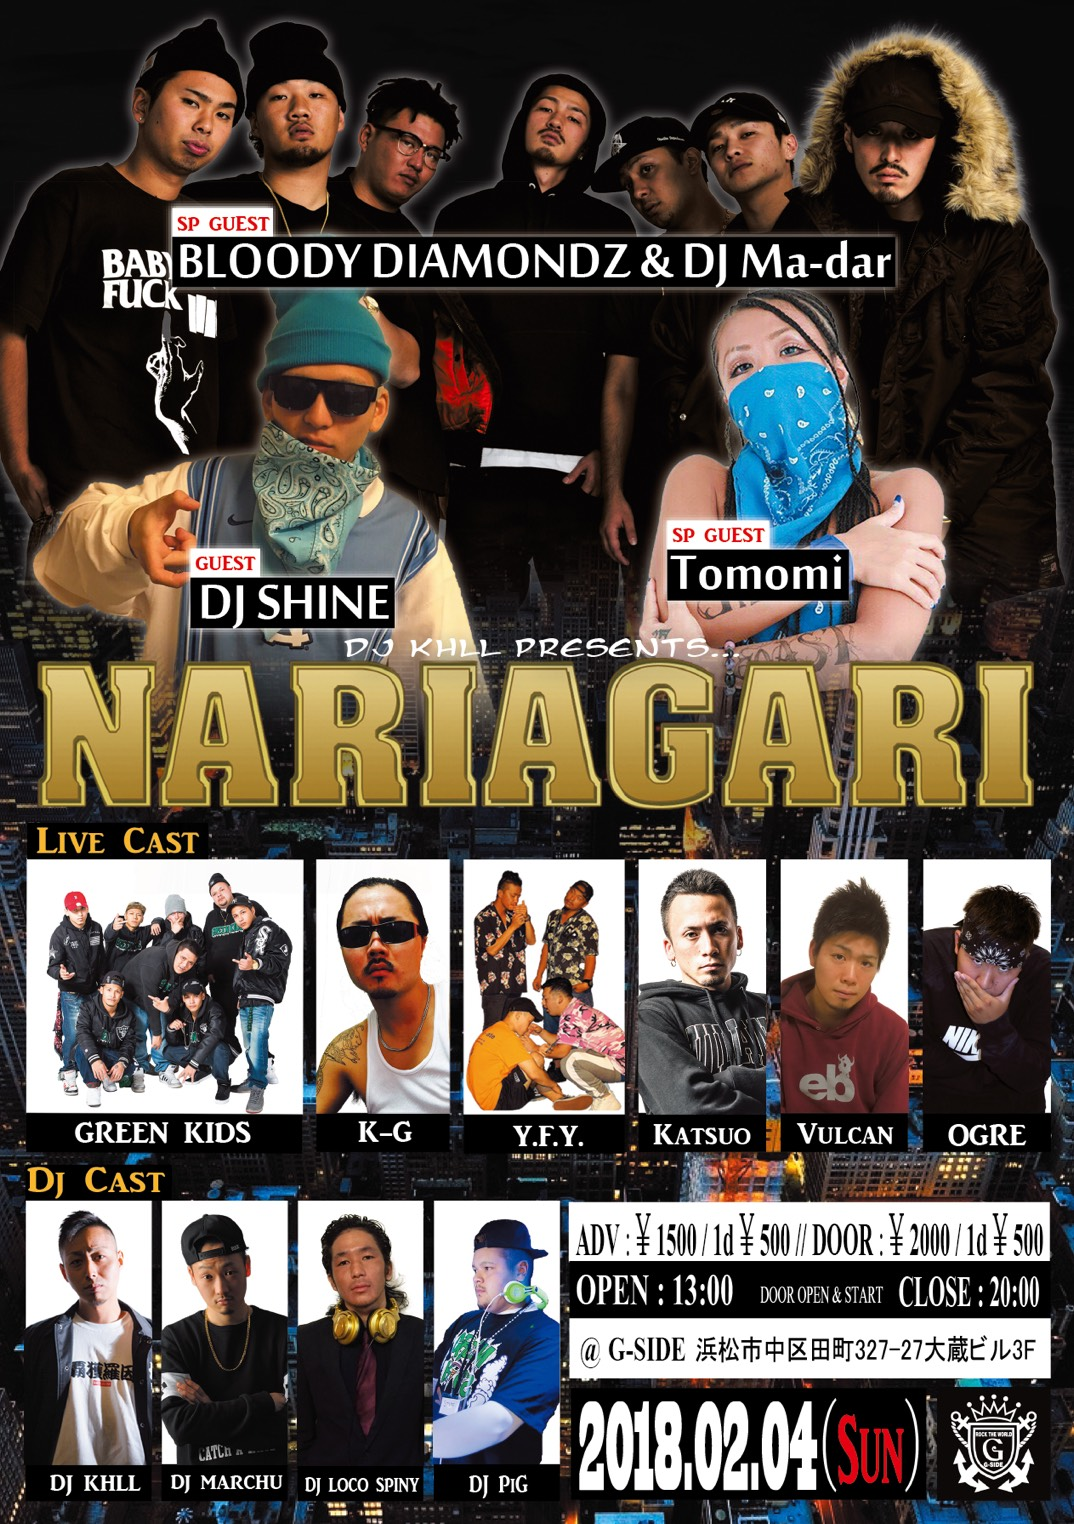 ◆NARIAGARI◆ DJ KHLL presents